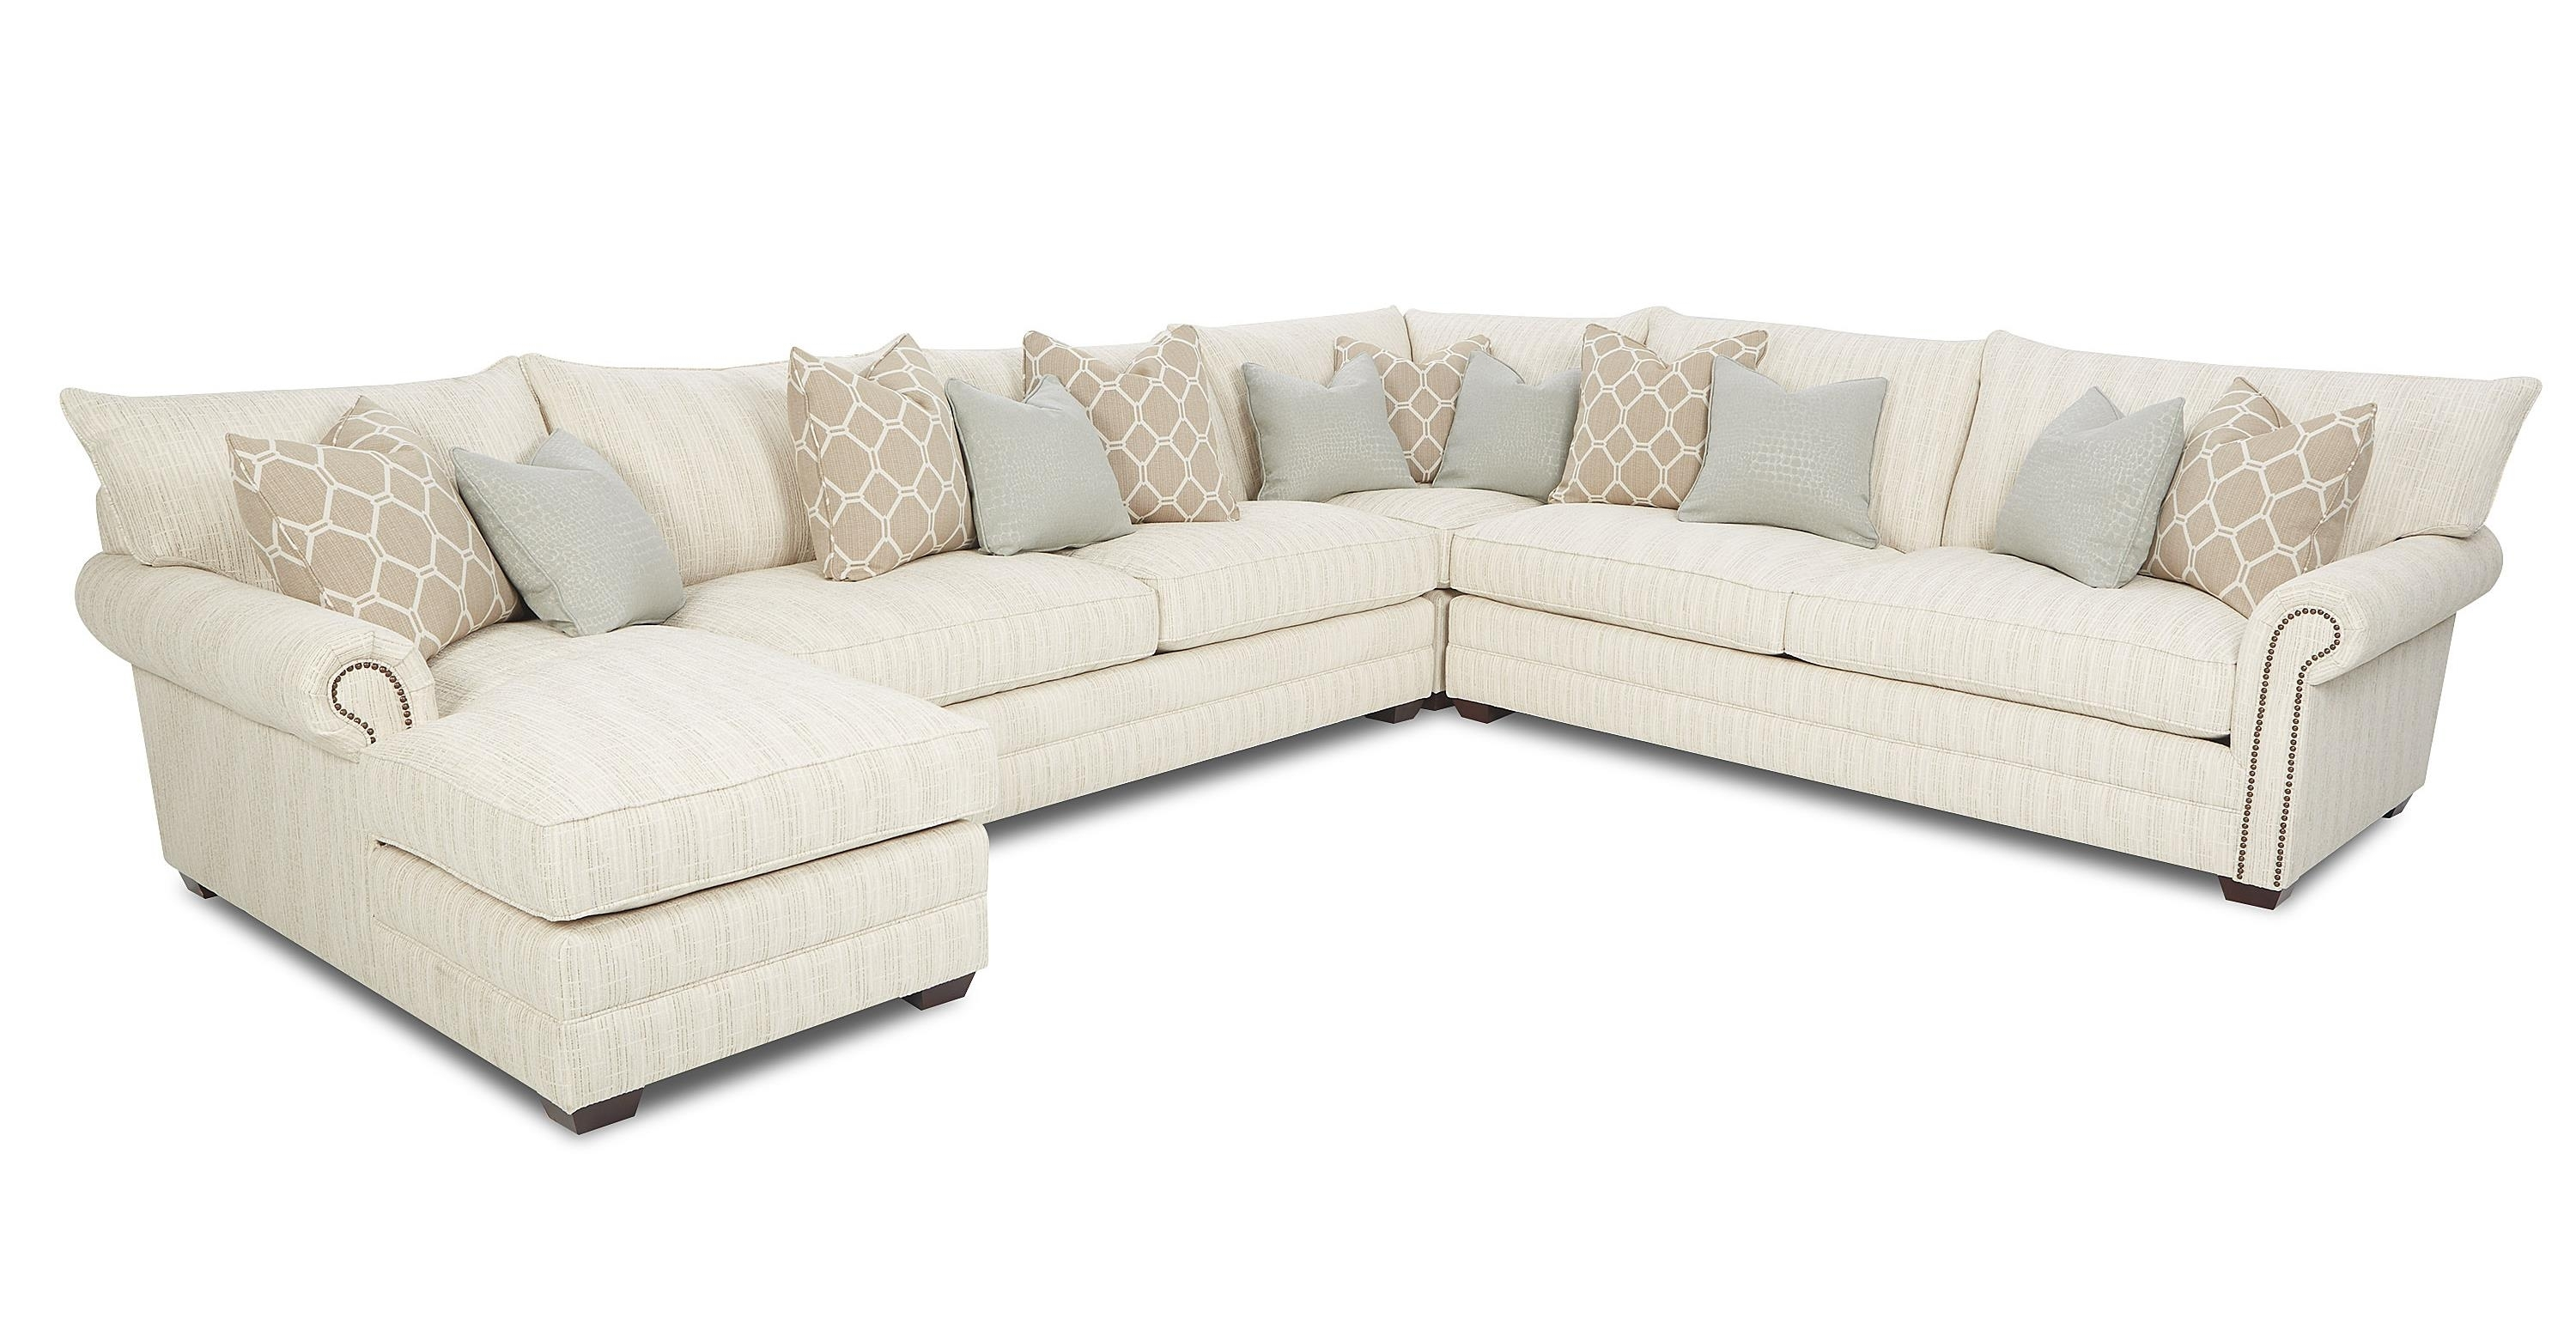 Traditional Sectional Sofa With Nailhead Trim And Chaise Lounge With Regard To Sectional Sofas With Nailheads (Image 9 of 10)